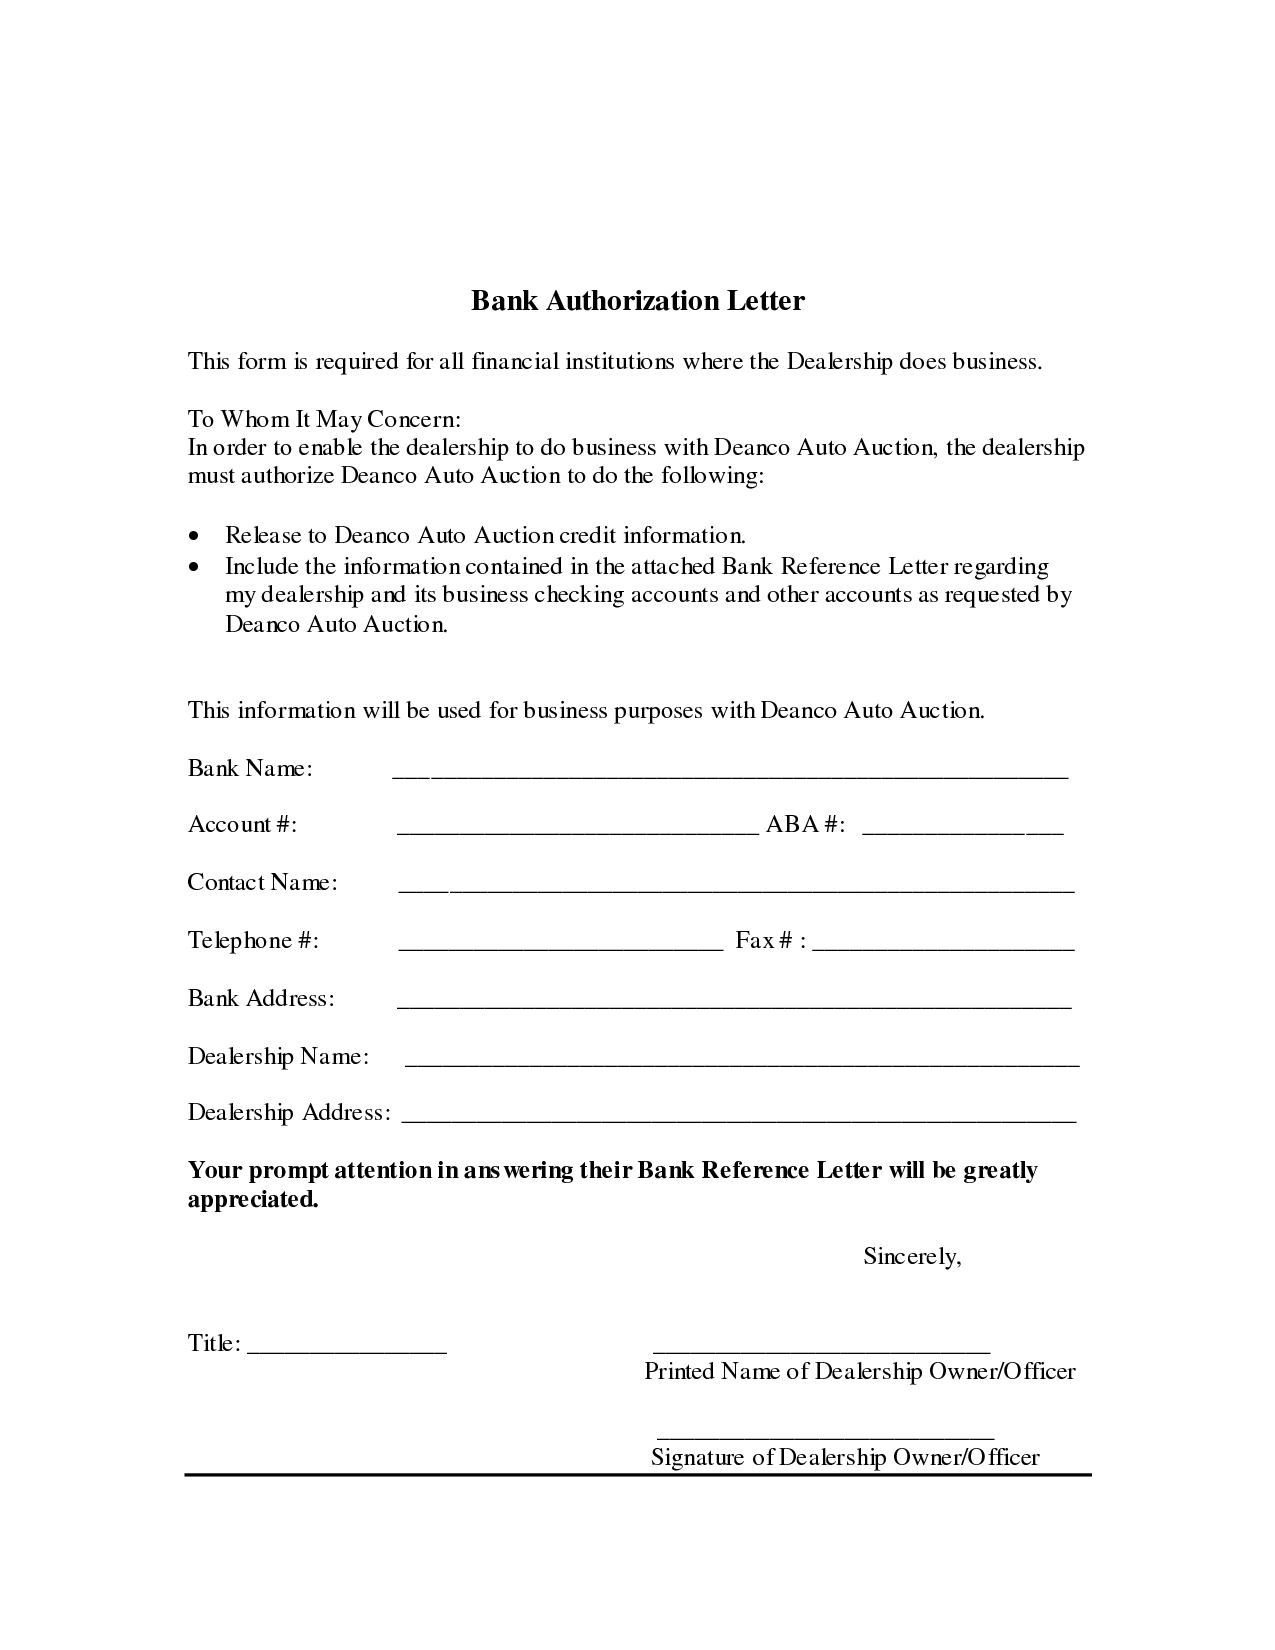 sample authorization letter to bank manager